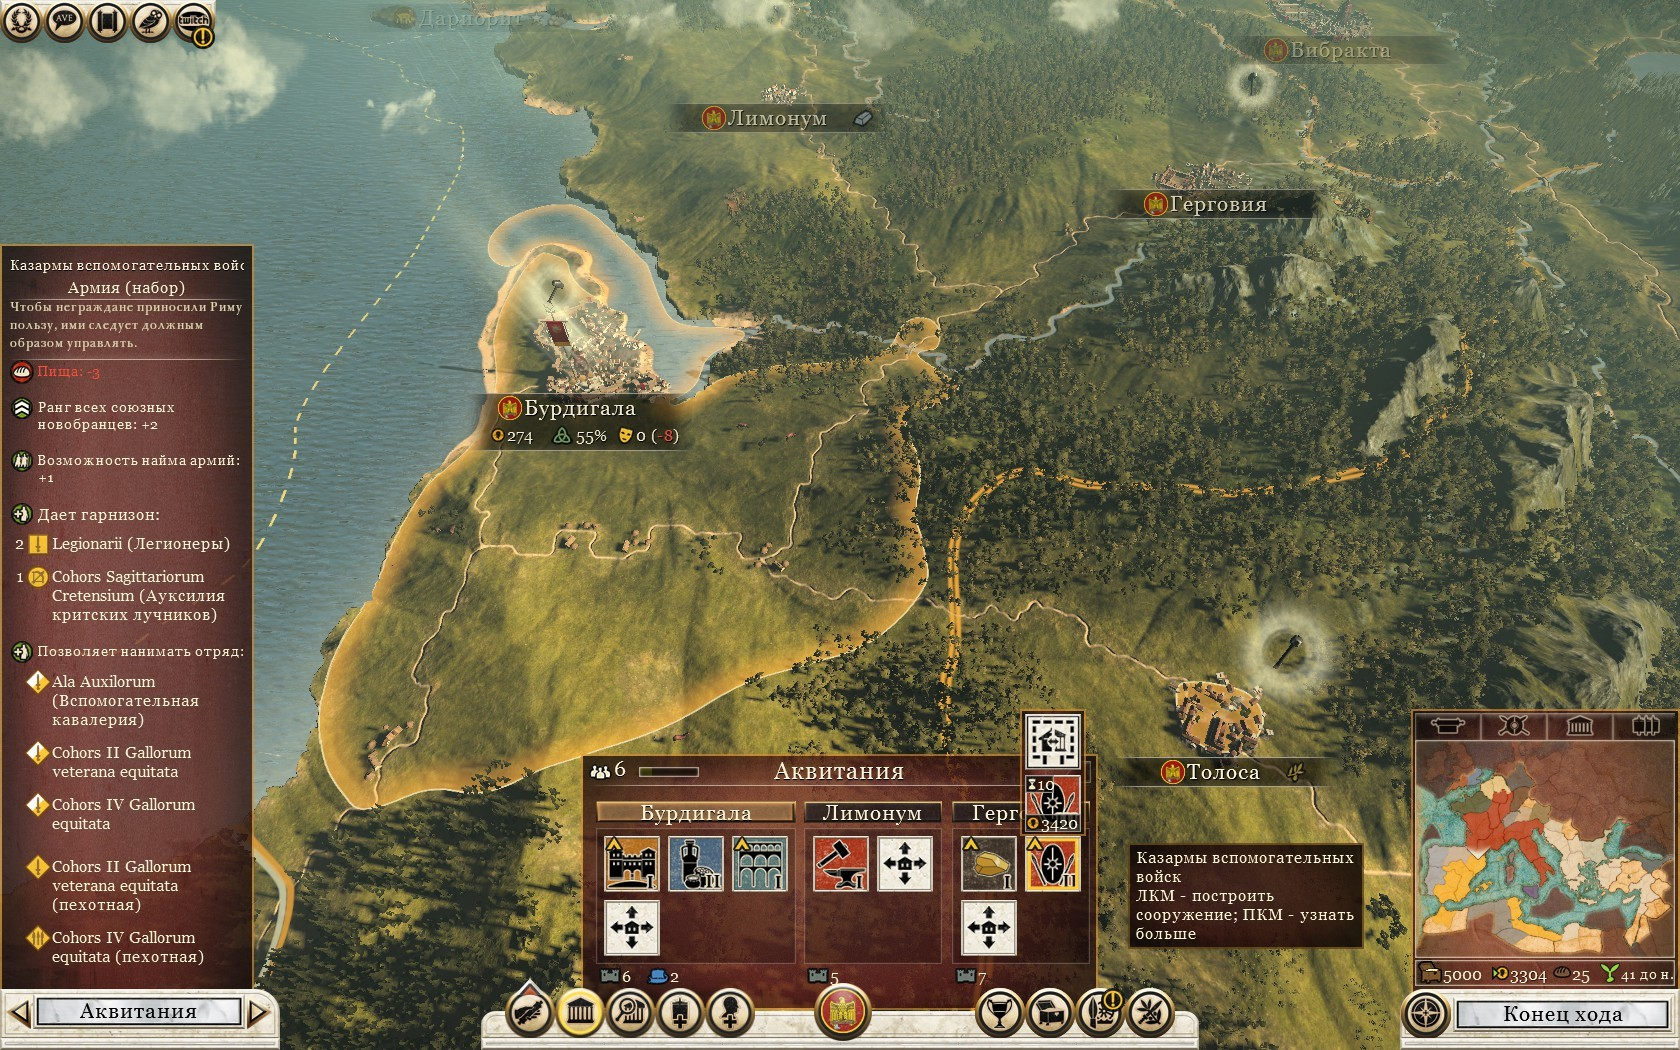 total_war1443363792_gallia.jpg